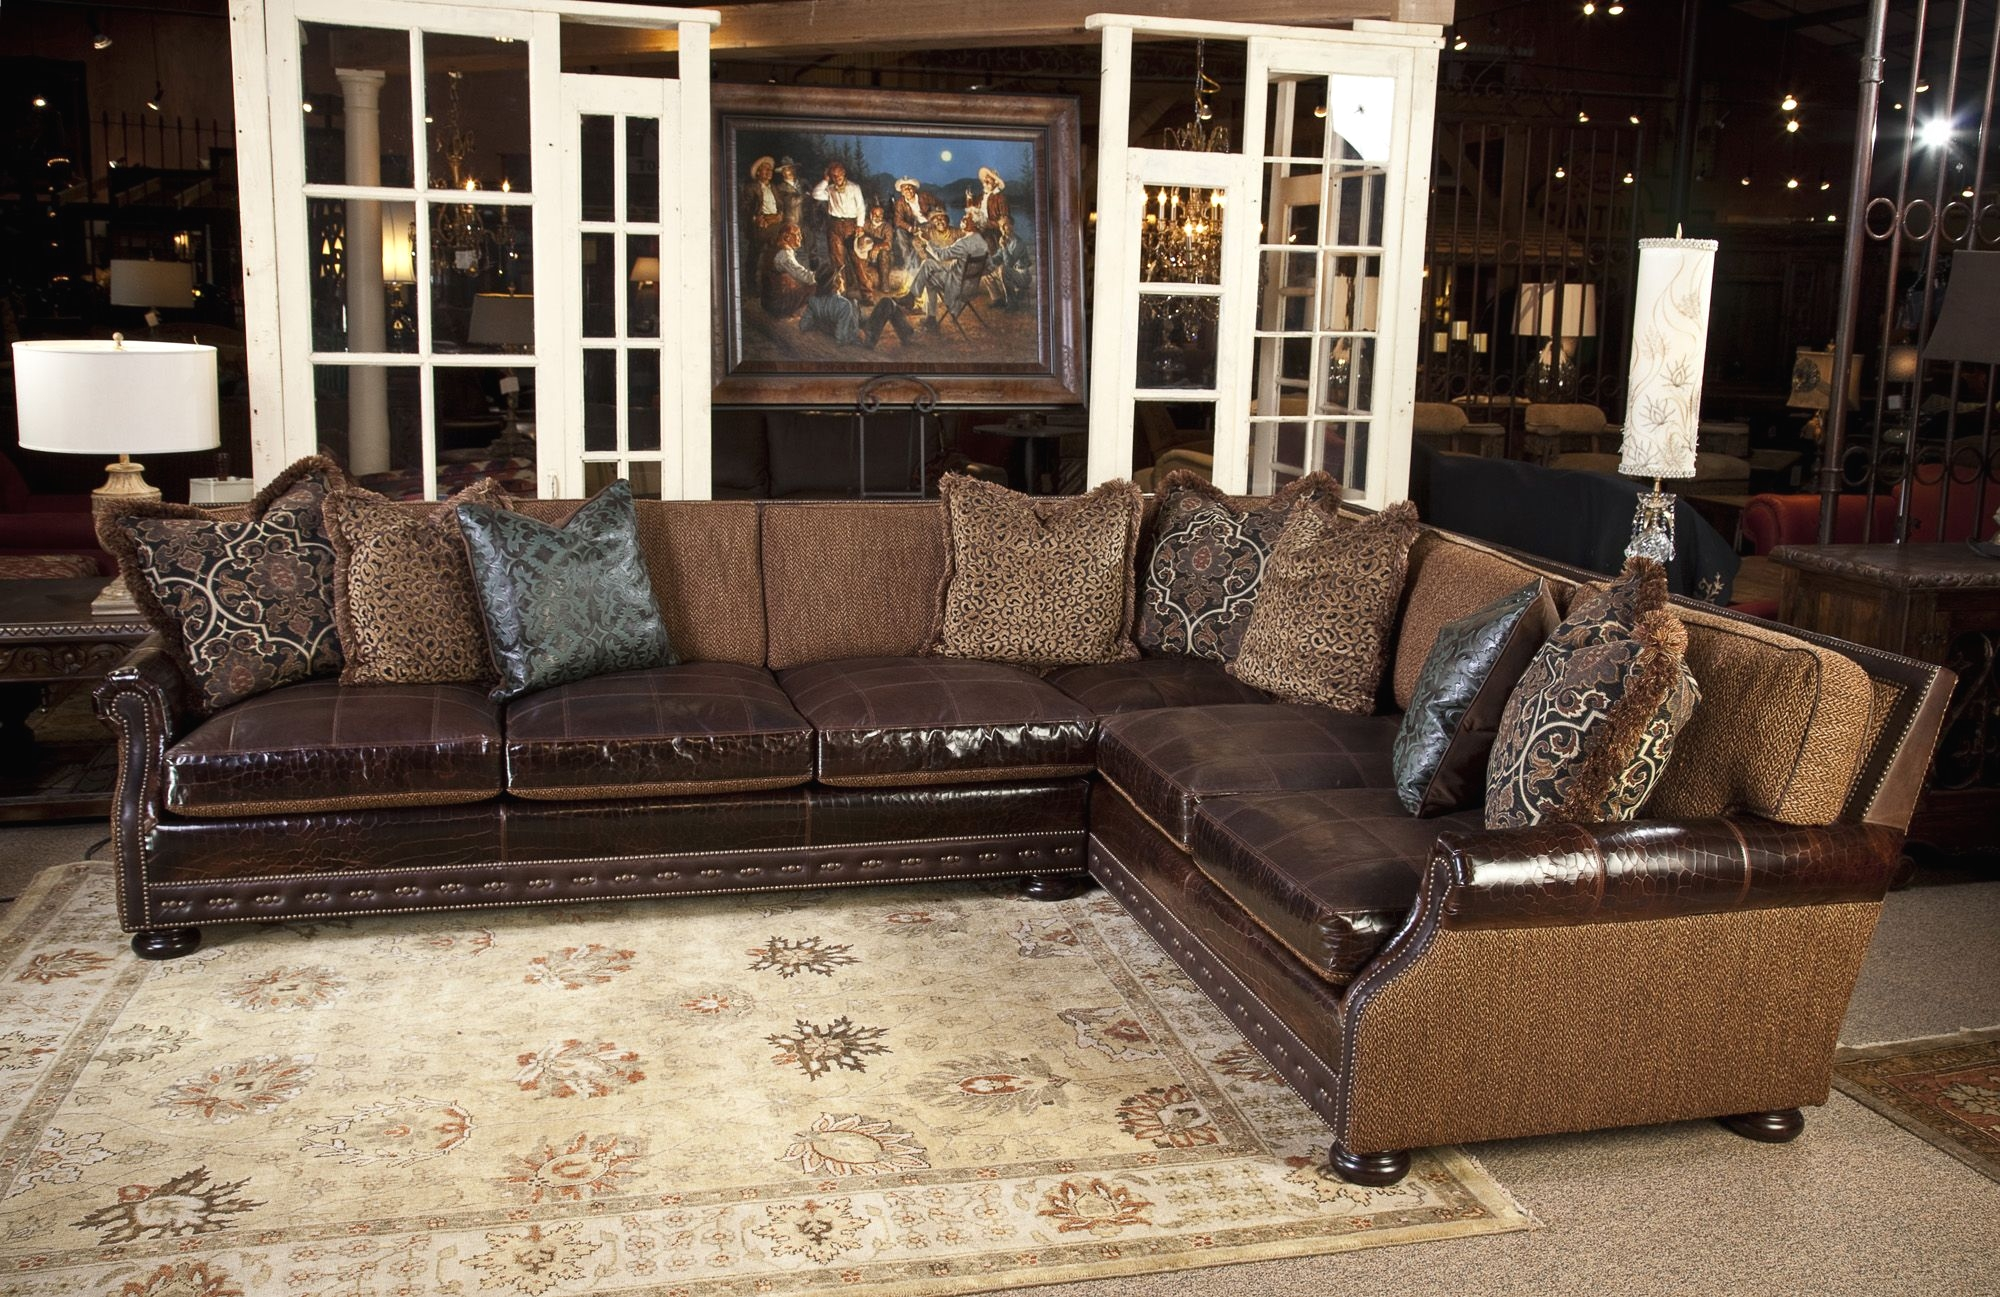 Western Living Rooms Beautiful Western Living Room Images  Design Ideas Trends 2017